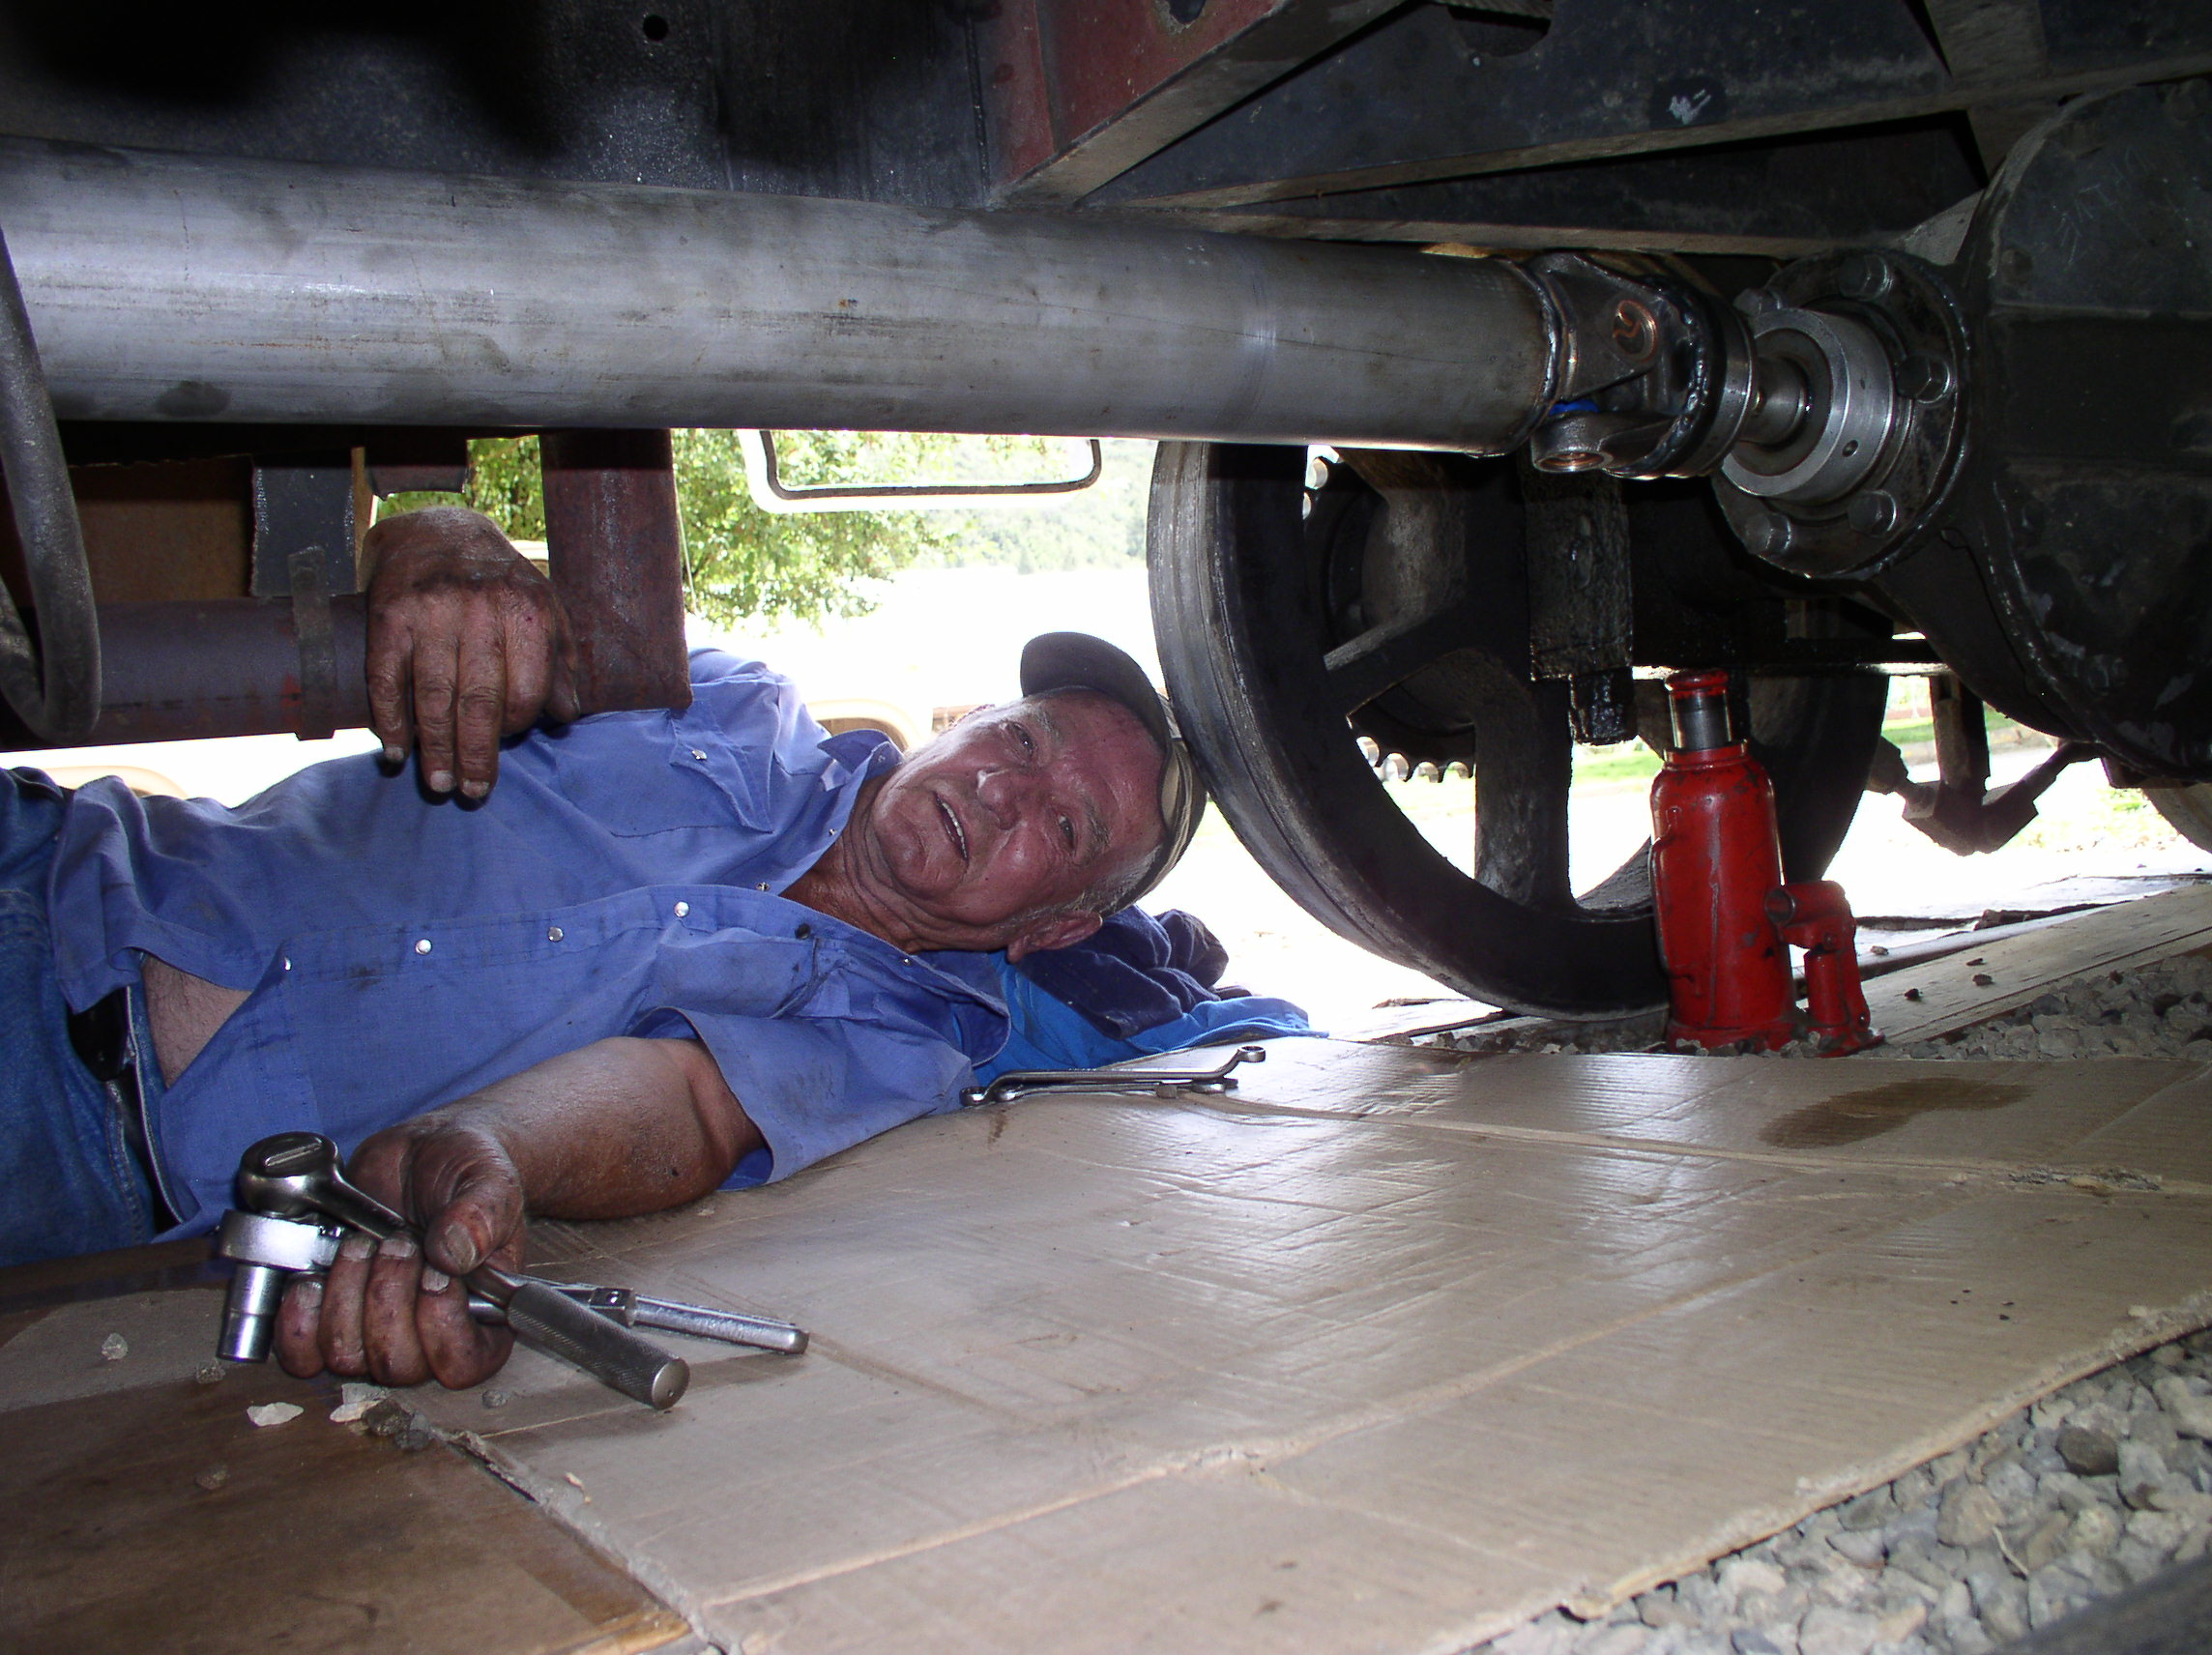 Installing a new driveshaft - August, 2008